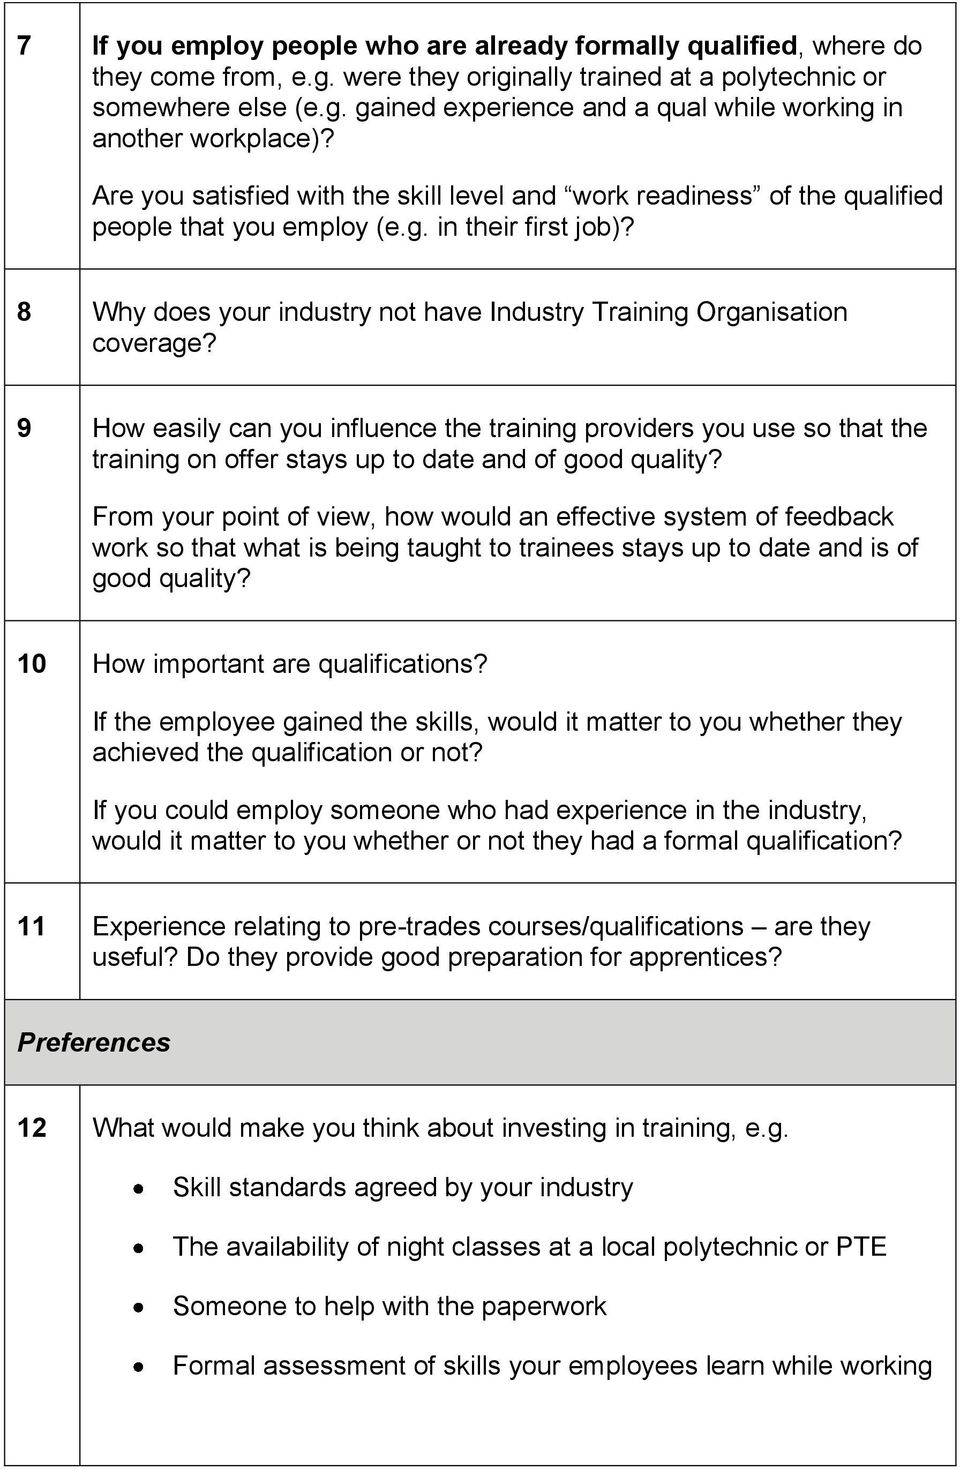 9 How easily can you influence the training providers you use so that the training on offer stays up to date and of good quality?